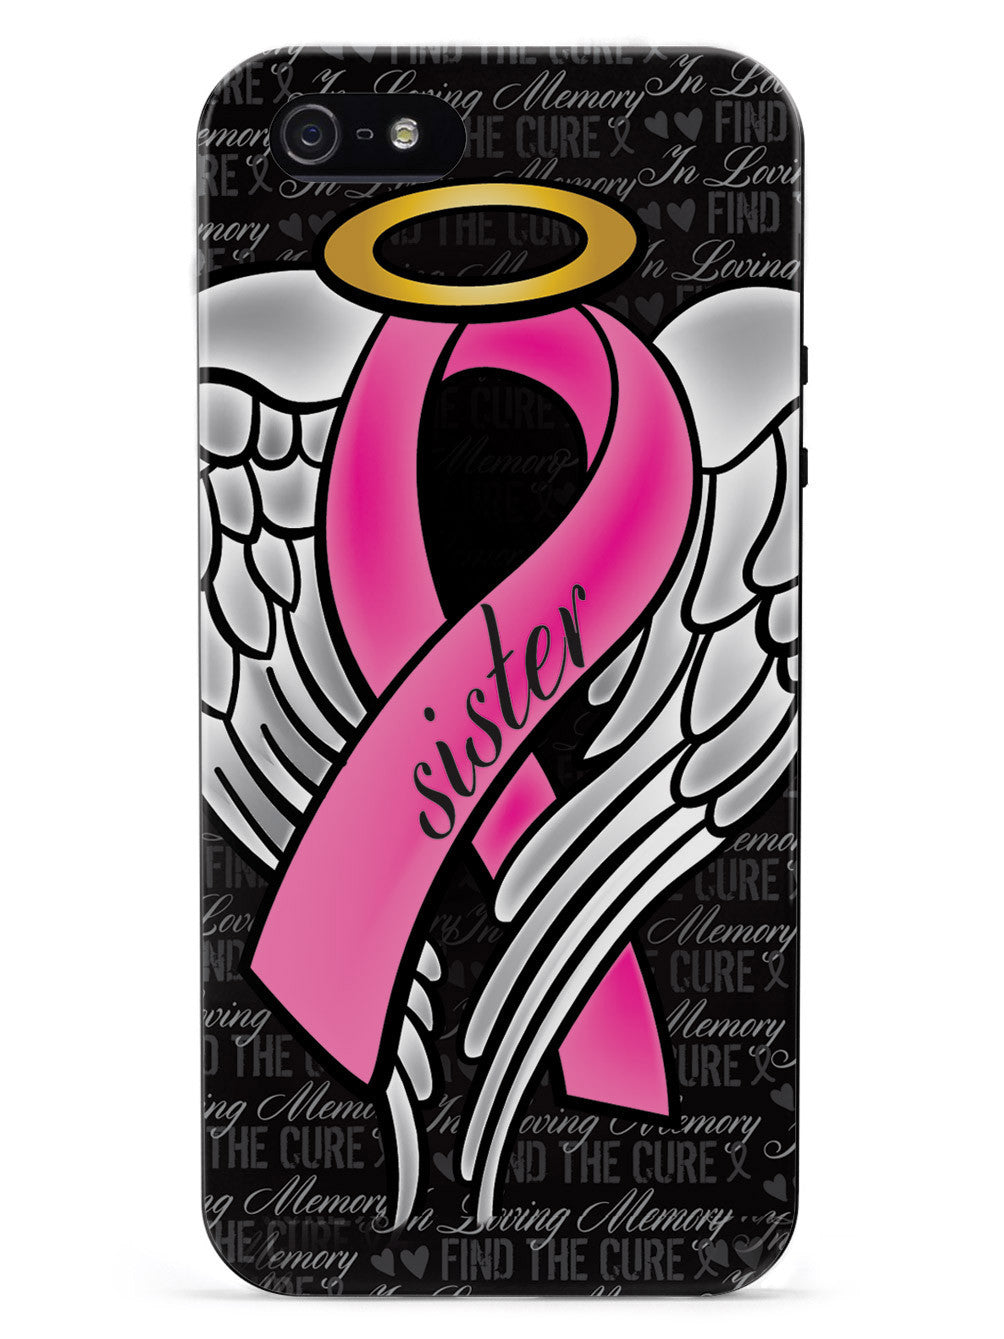 In Loving Memory of My Sister - Pink Ribbon Case